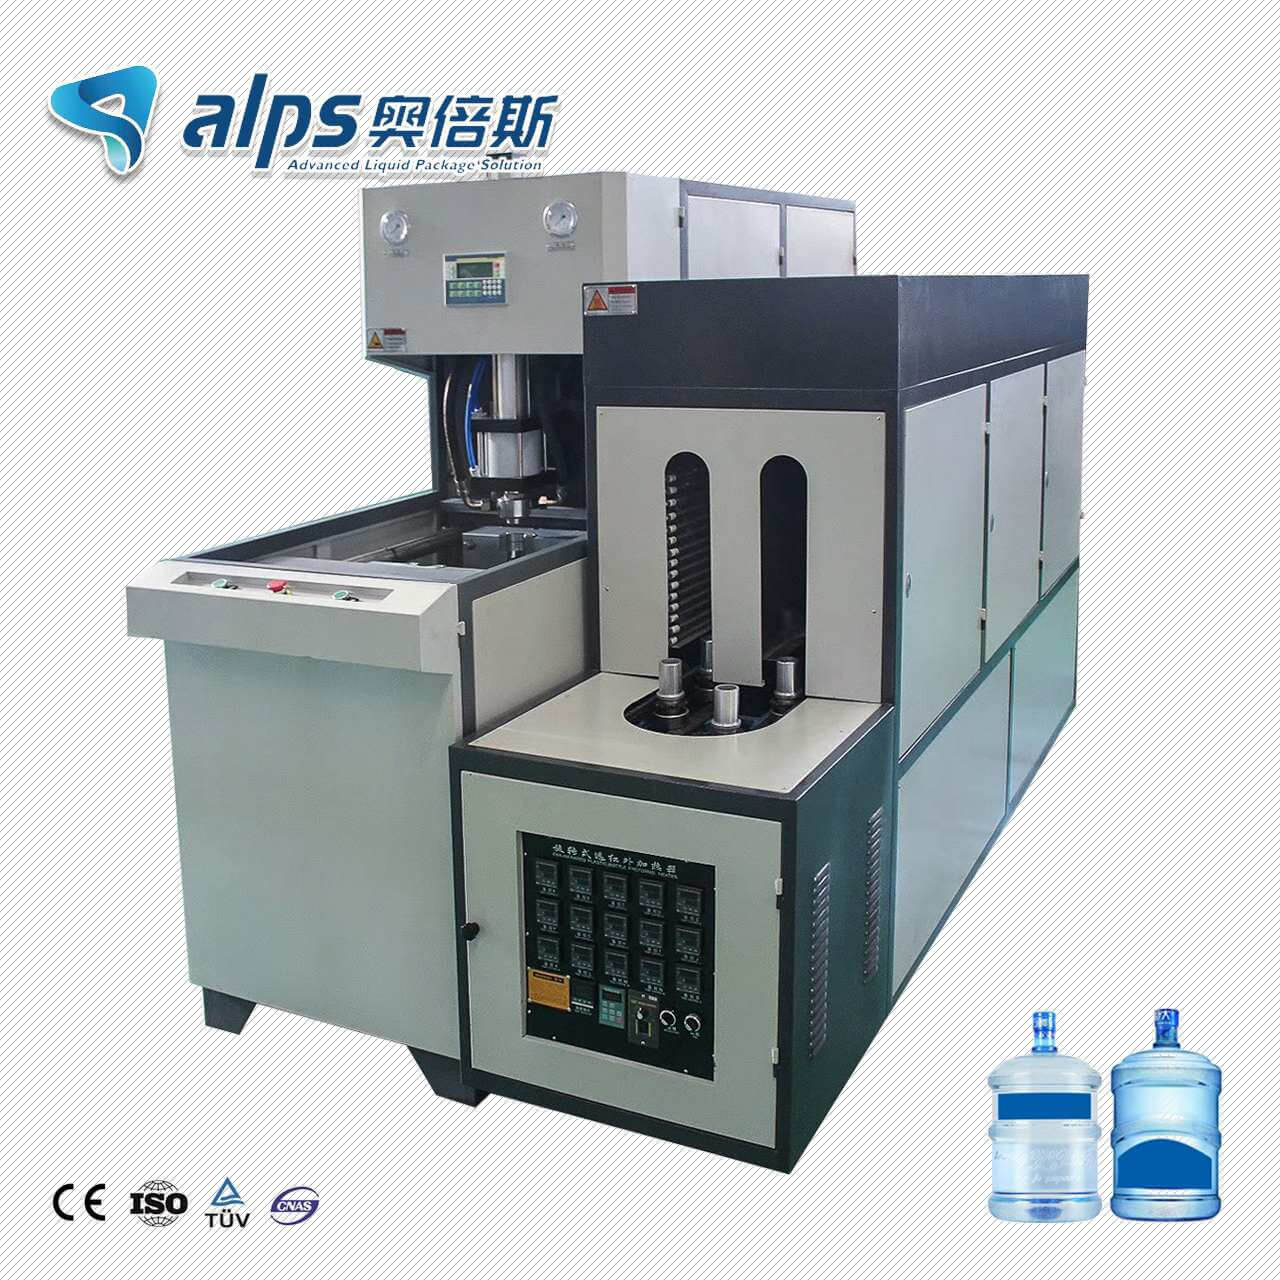 Is a Blow Molding Machine Used to Make Anything Other than Plastic Bottles?